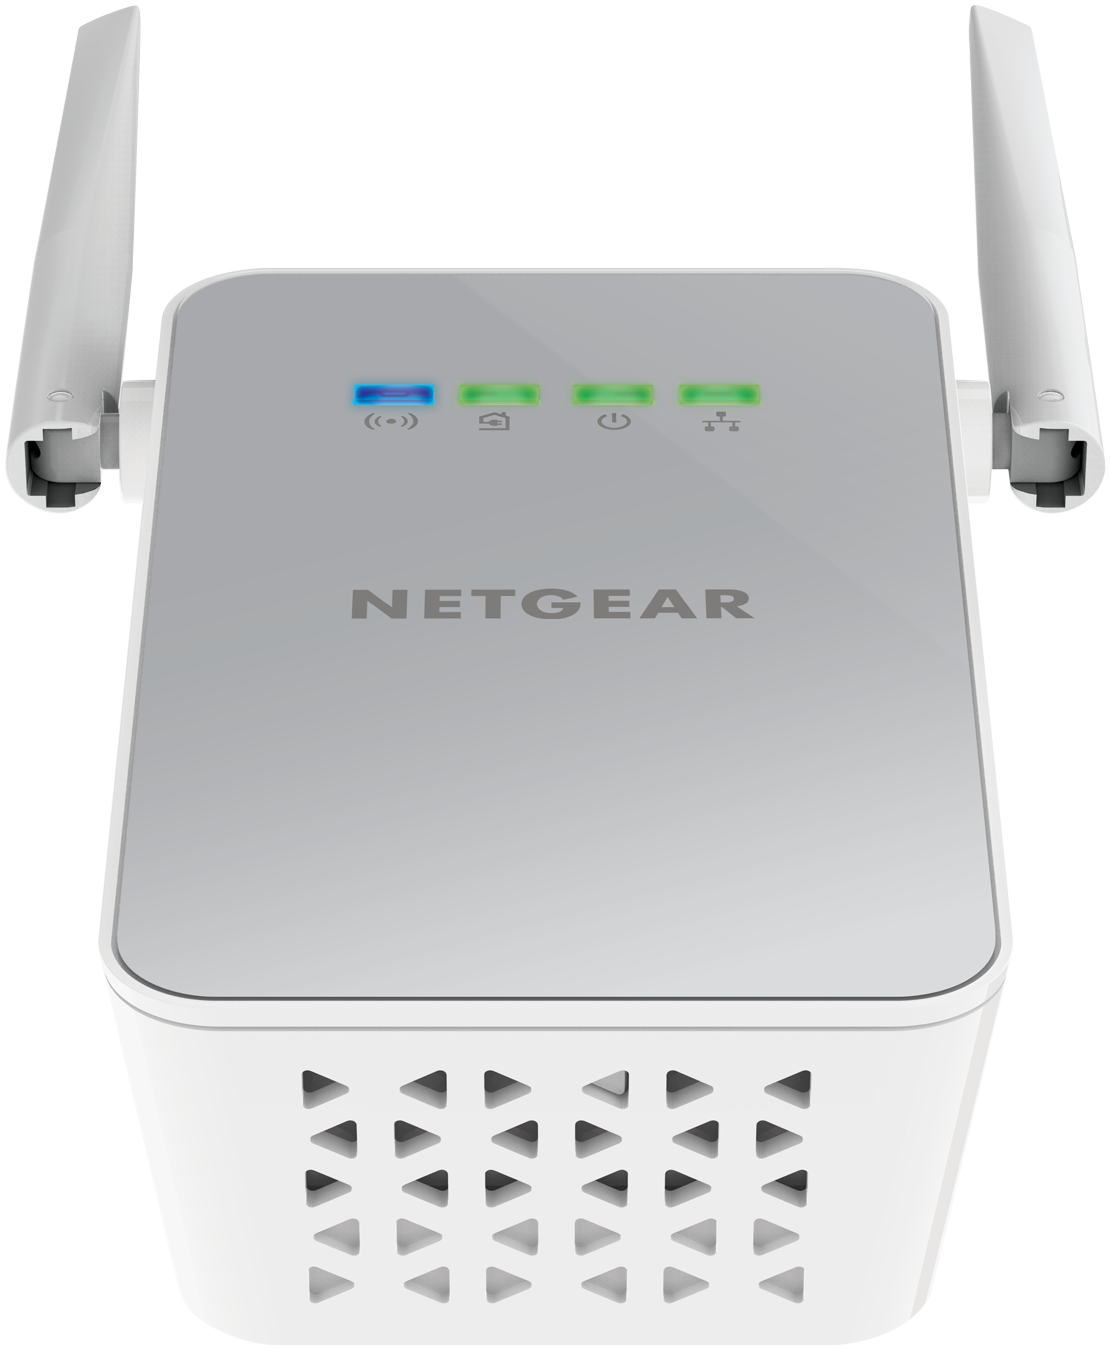 Plw1000 Powerline Networking Home Netgear Ghz Amplifier Circuit Http Wwwdatasheetdircom Dualband